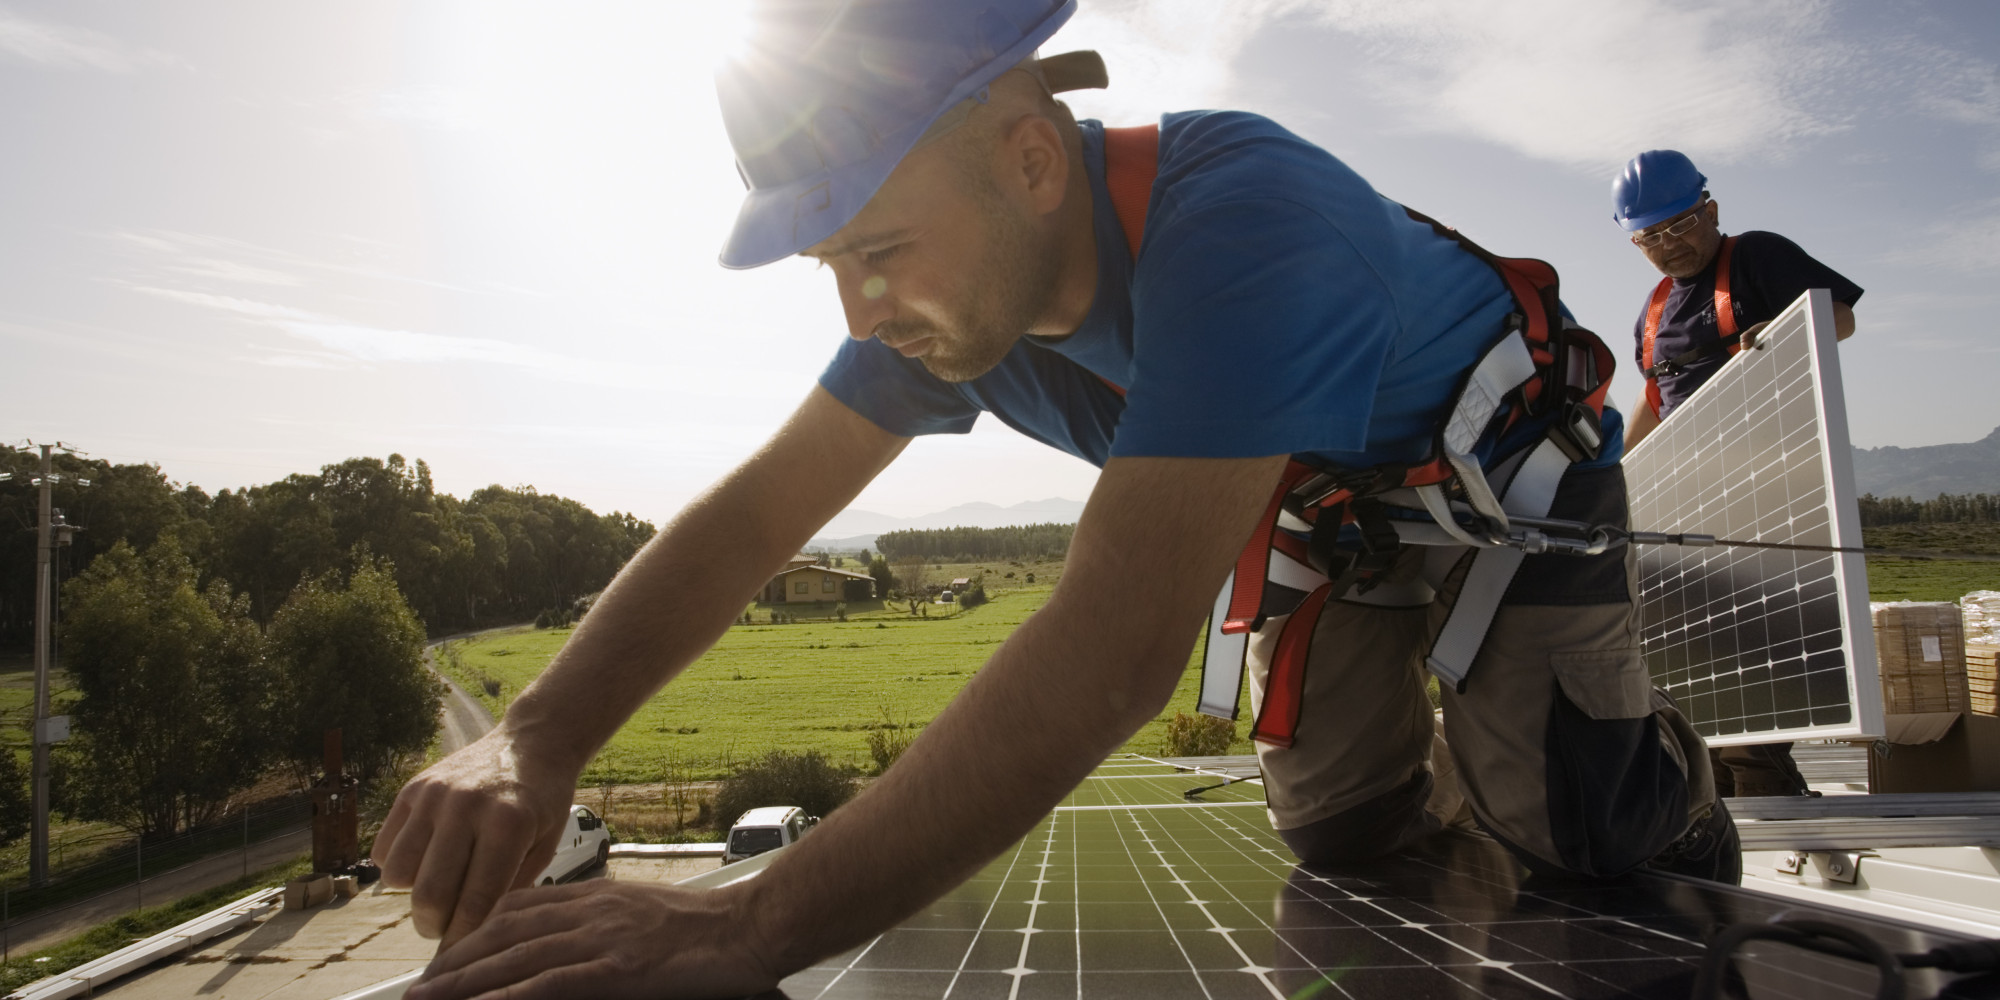 US clean energy jobs grew 3.6 percent in 2018, outnumber fossil fuel jobs 3-to-1